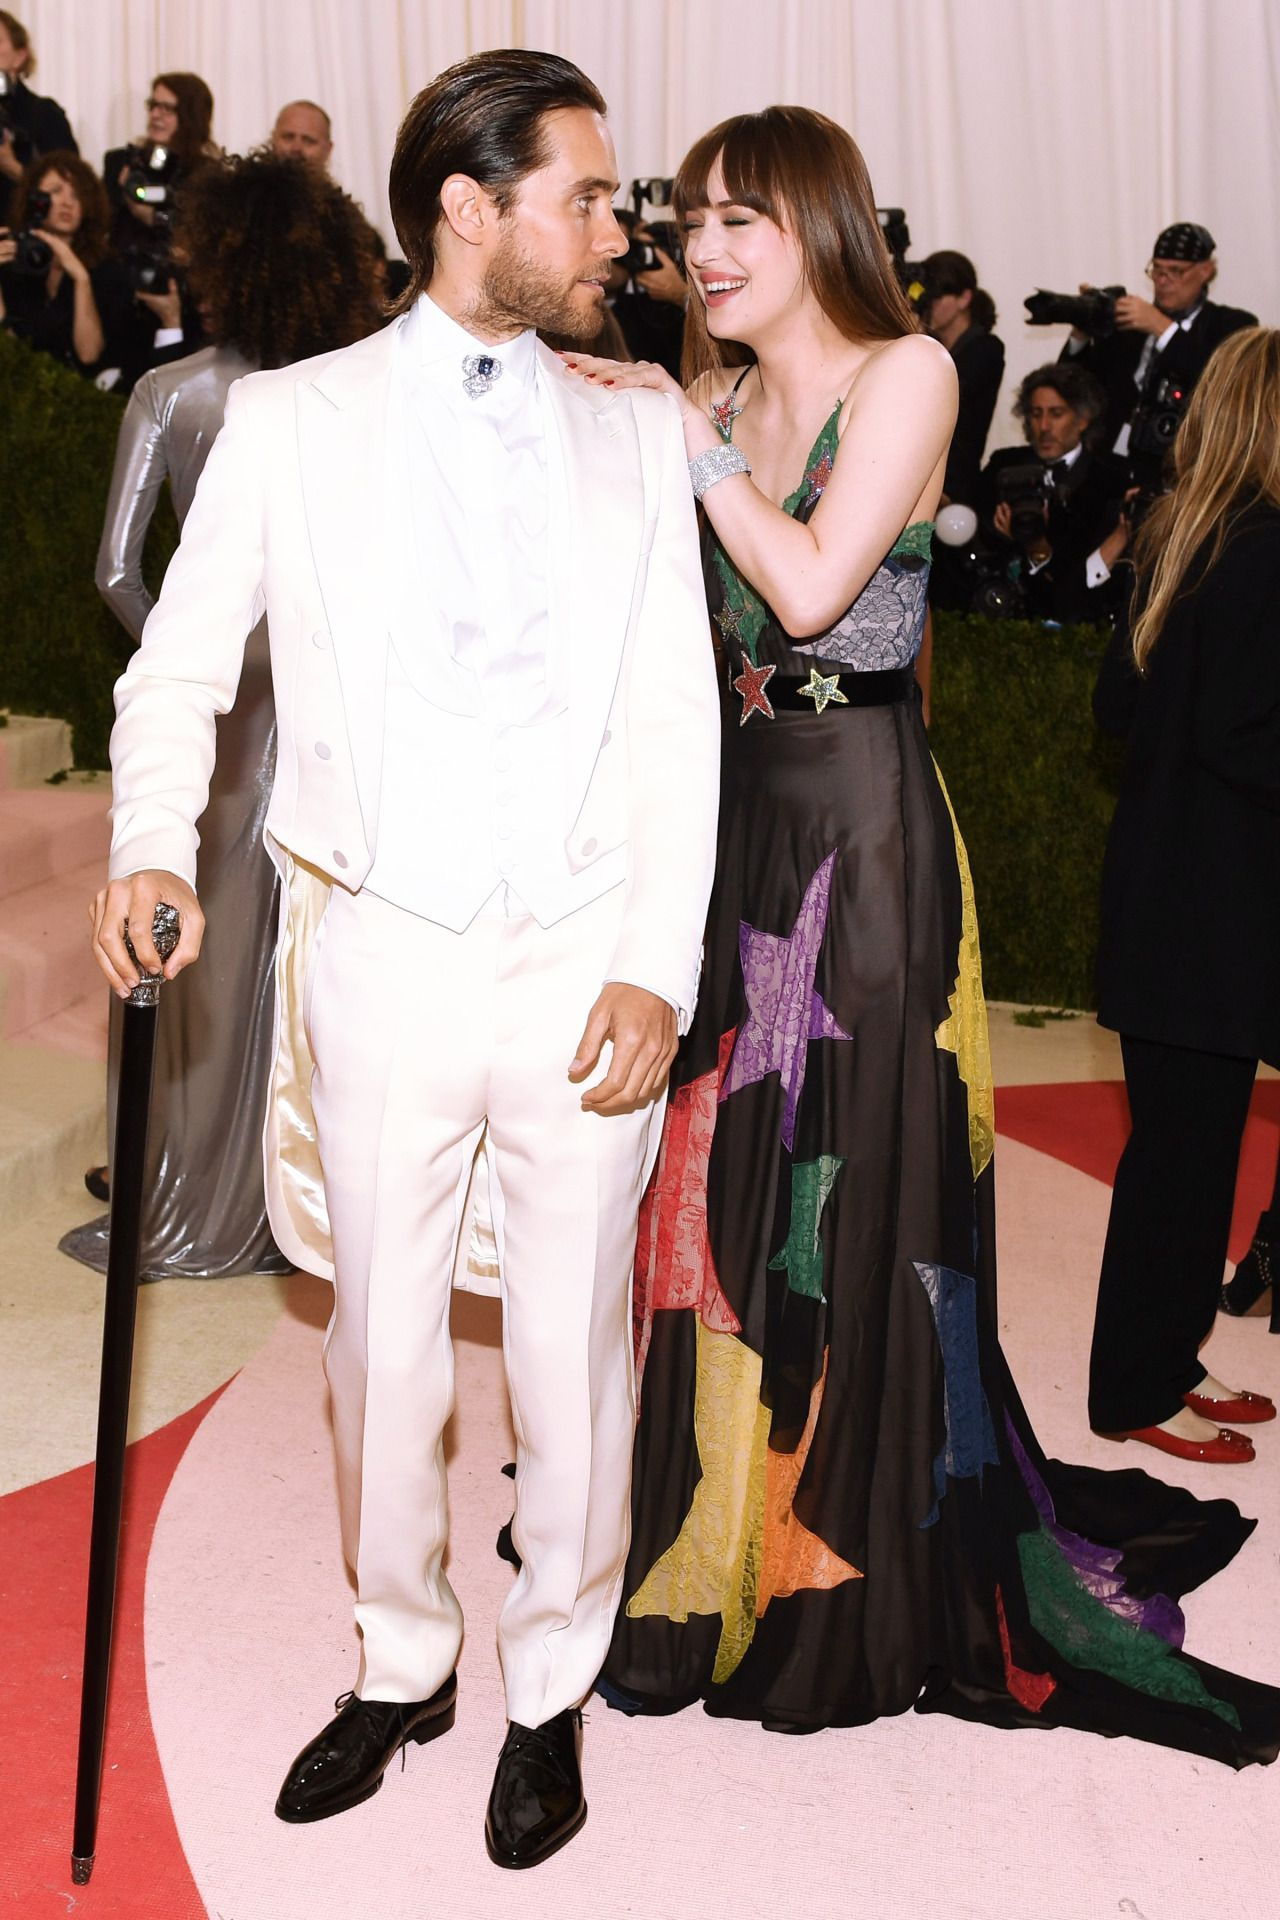 266f4f3c24b Dakota Johnson wearing Gucci at the Met Gala in NY with Jared Leto - 3 May  2016